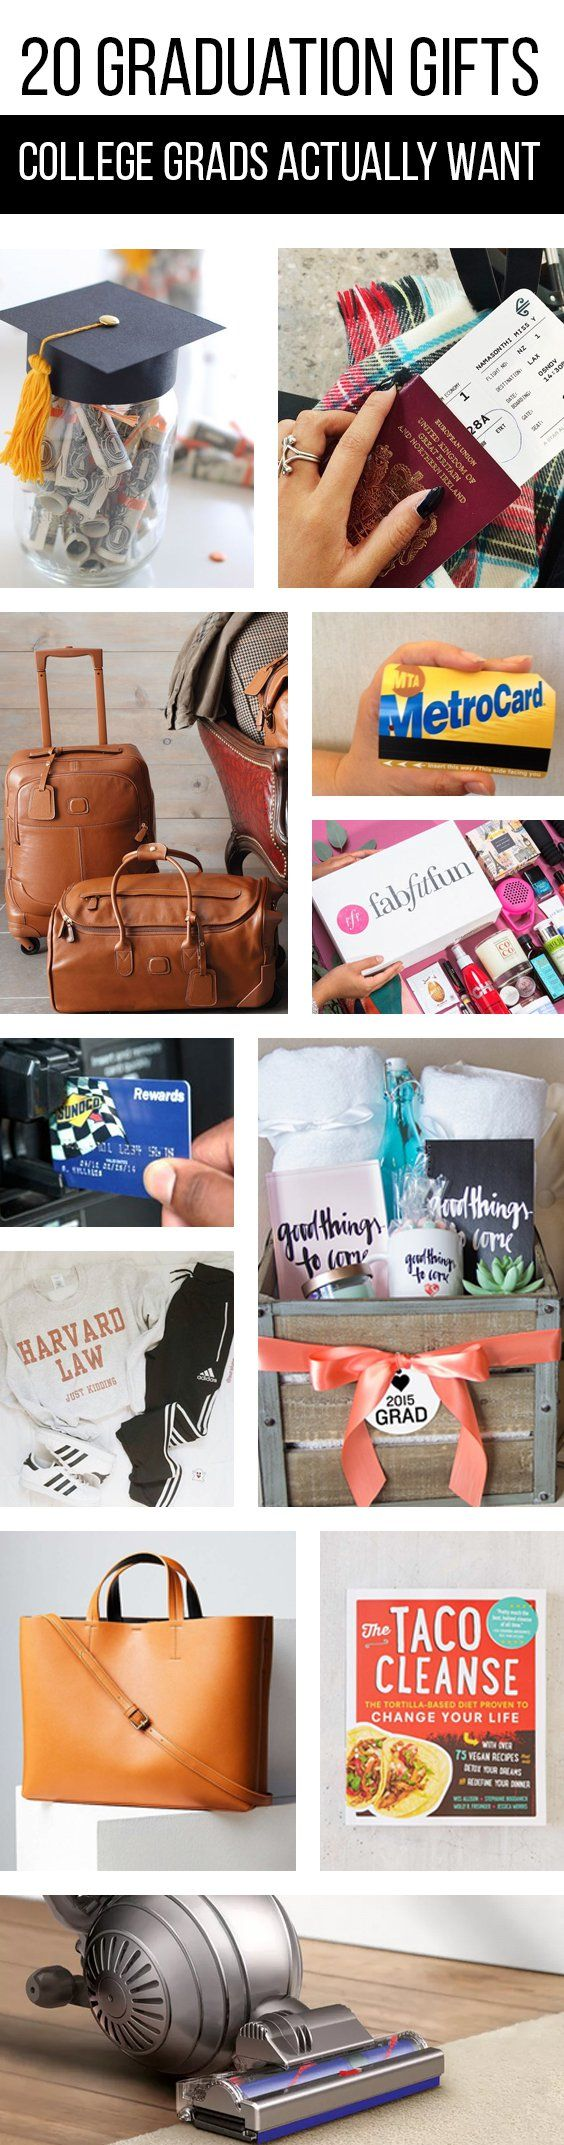 7233 best images about dorm room trends on pinterest - Graduation gift for interior design student ...